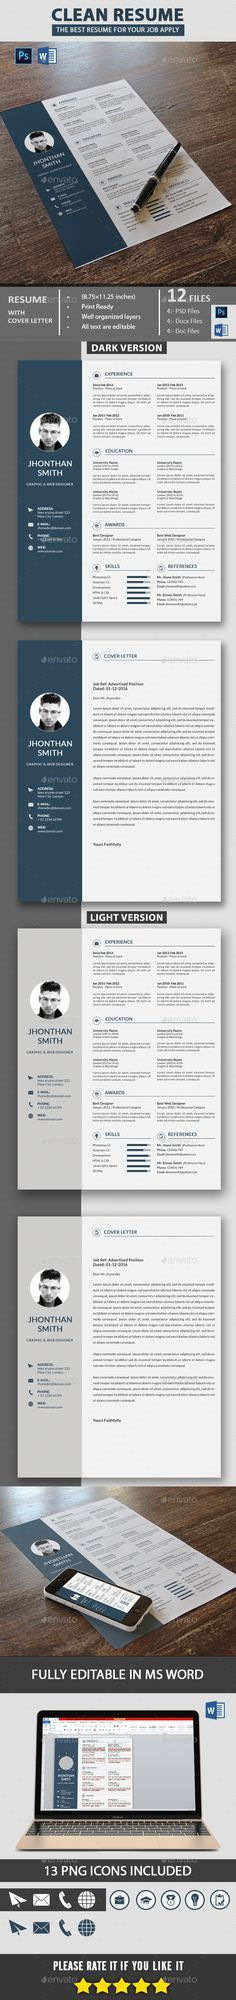 Resume - Resumes Stationery Download here Resume Templates - download resume template word